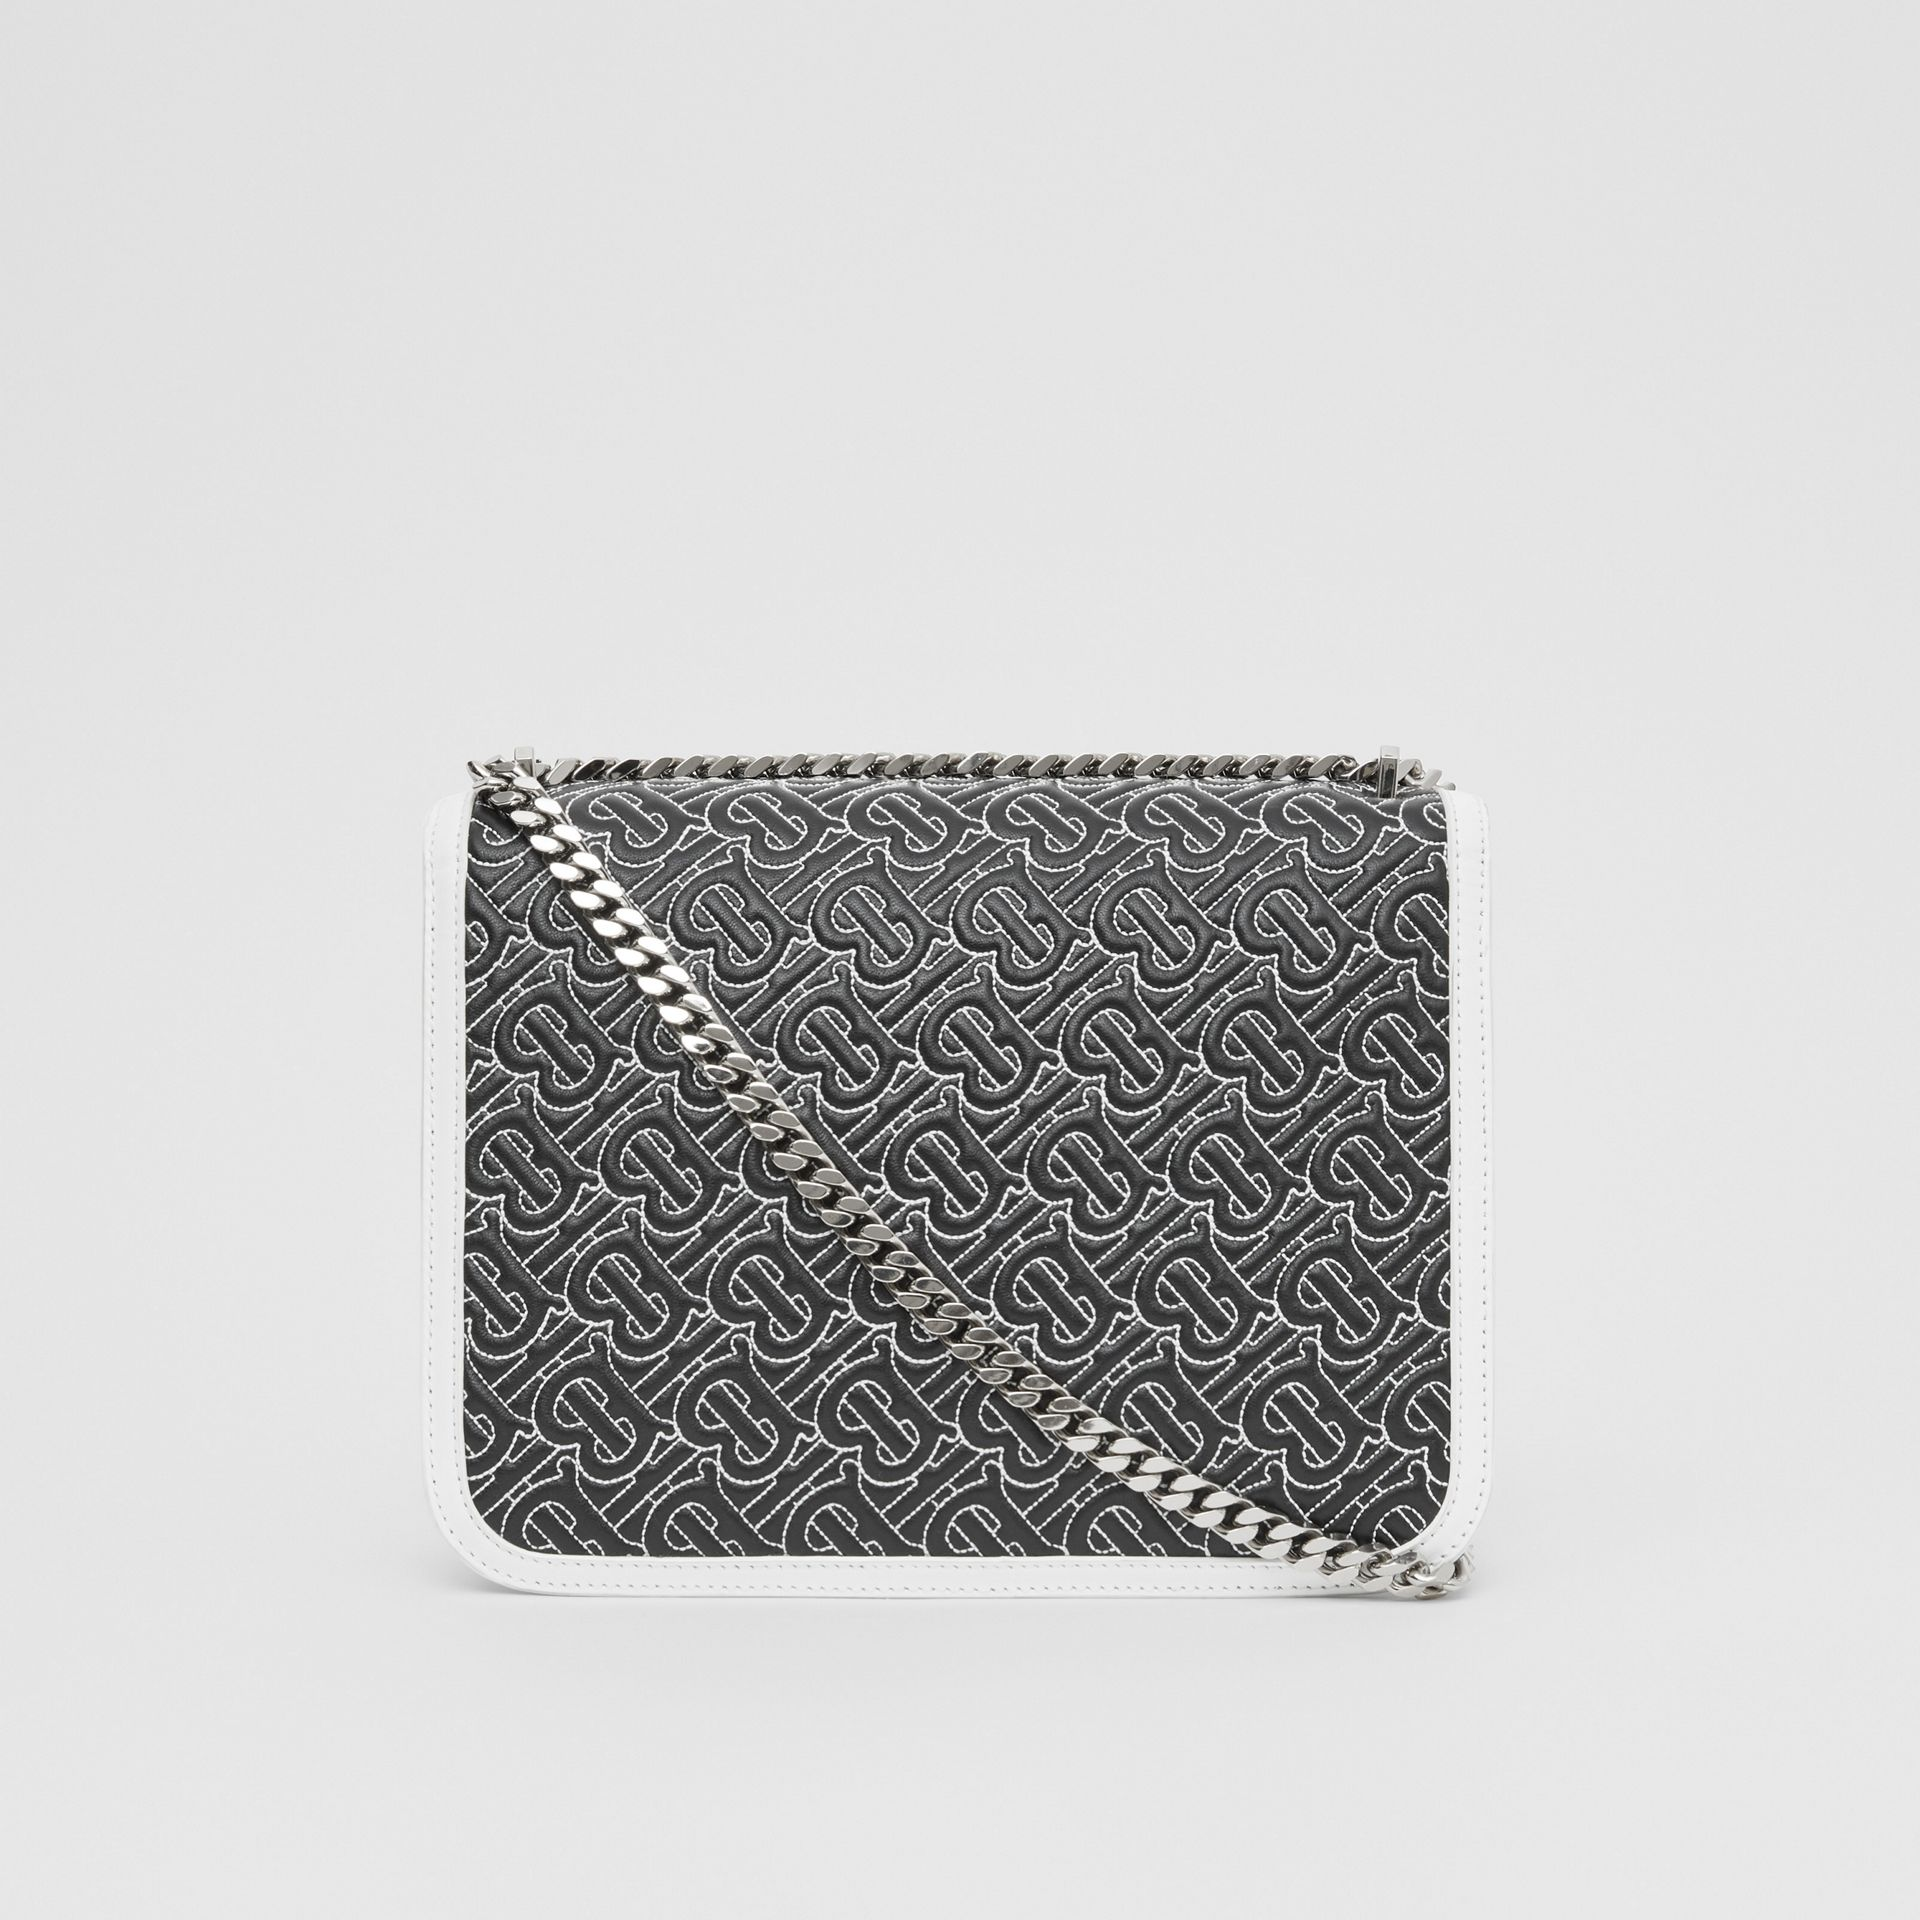 Medium Quilted Monogram Lambskin TB Bag in Black - Women | Burberry - gallery image 7